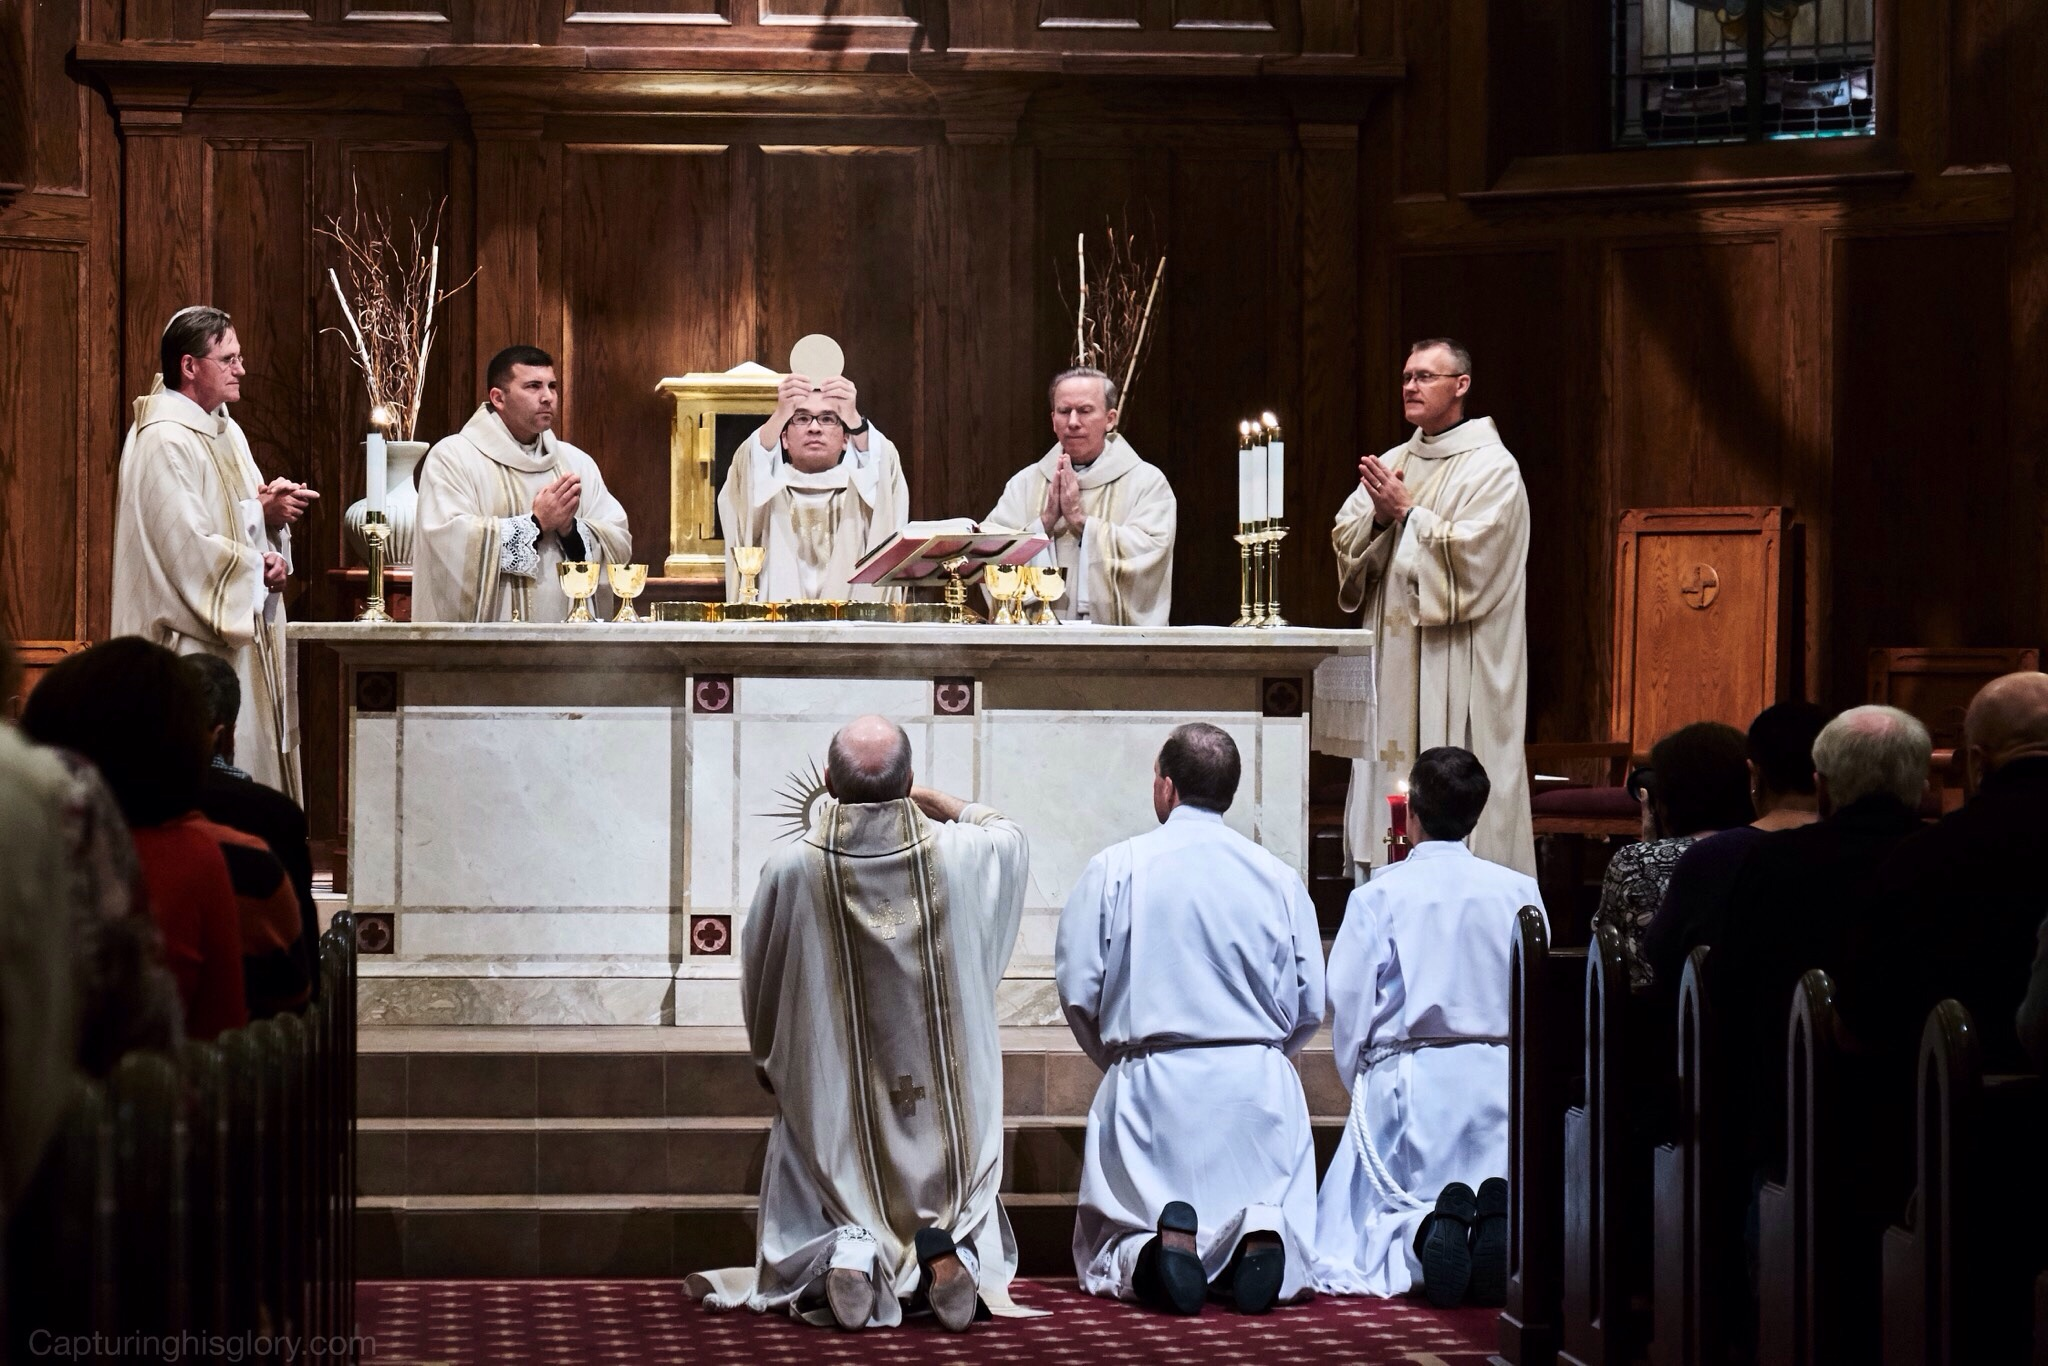 The commisioning of priests and institution of the Eucharist...two great gifts